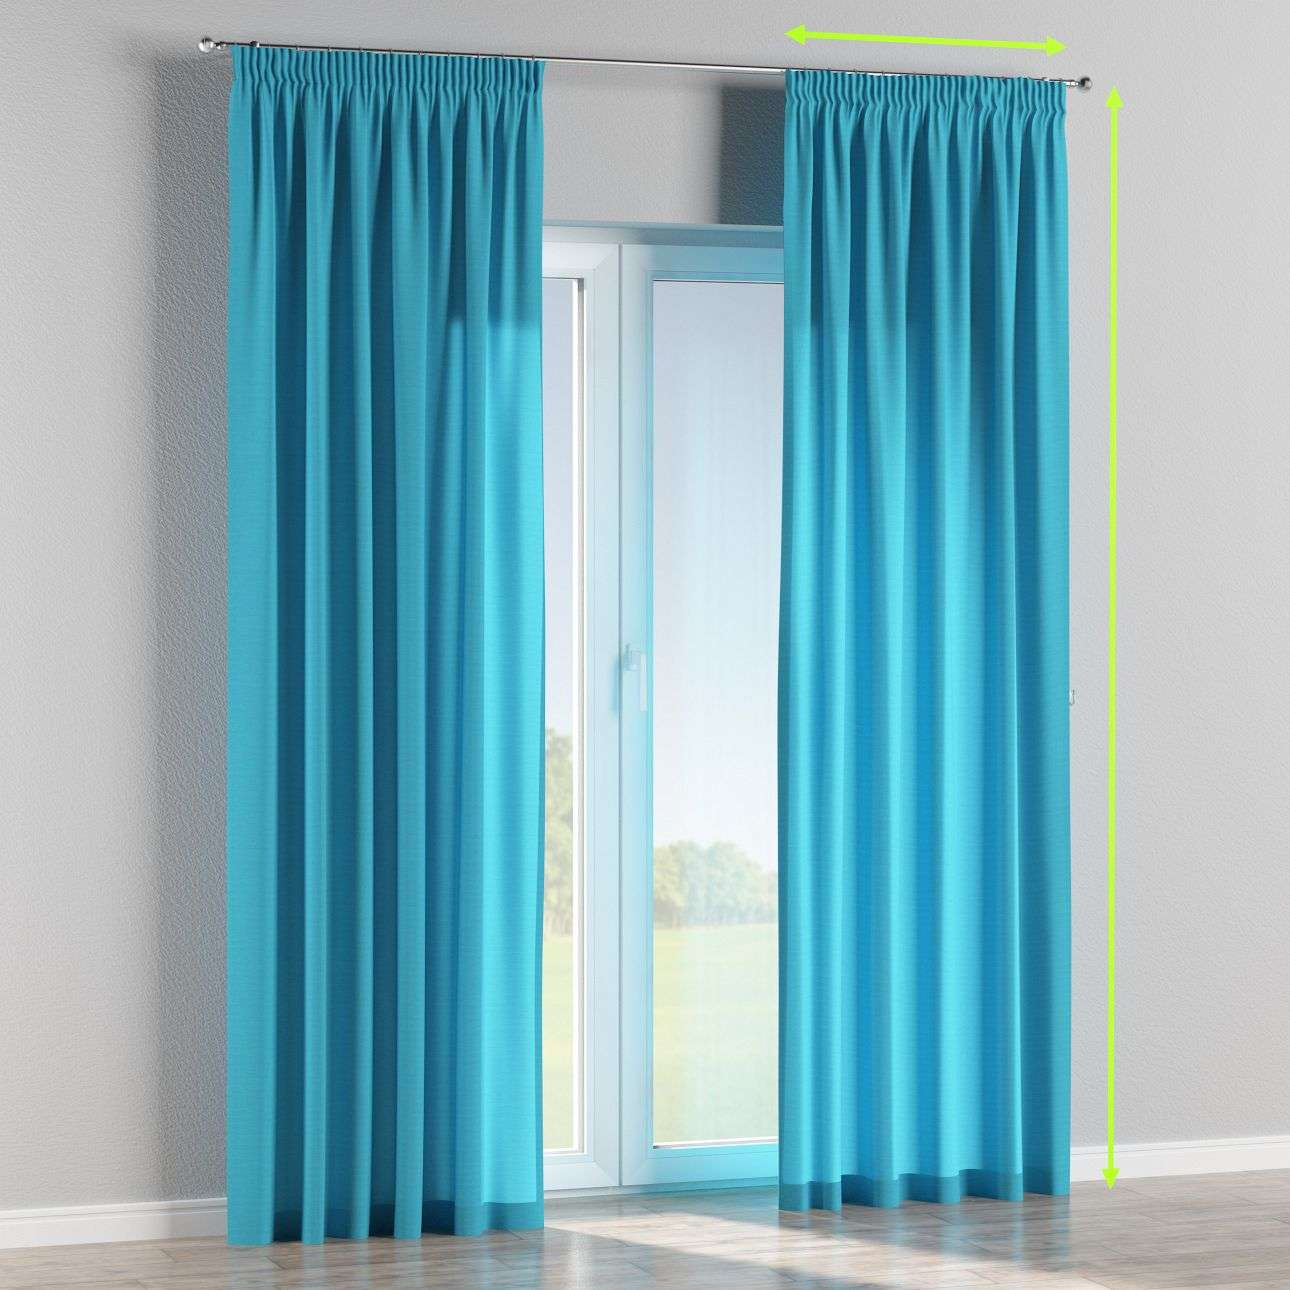 Pencil pleat curtains in collection Jupiter, fabric: 127-70